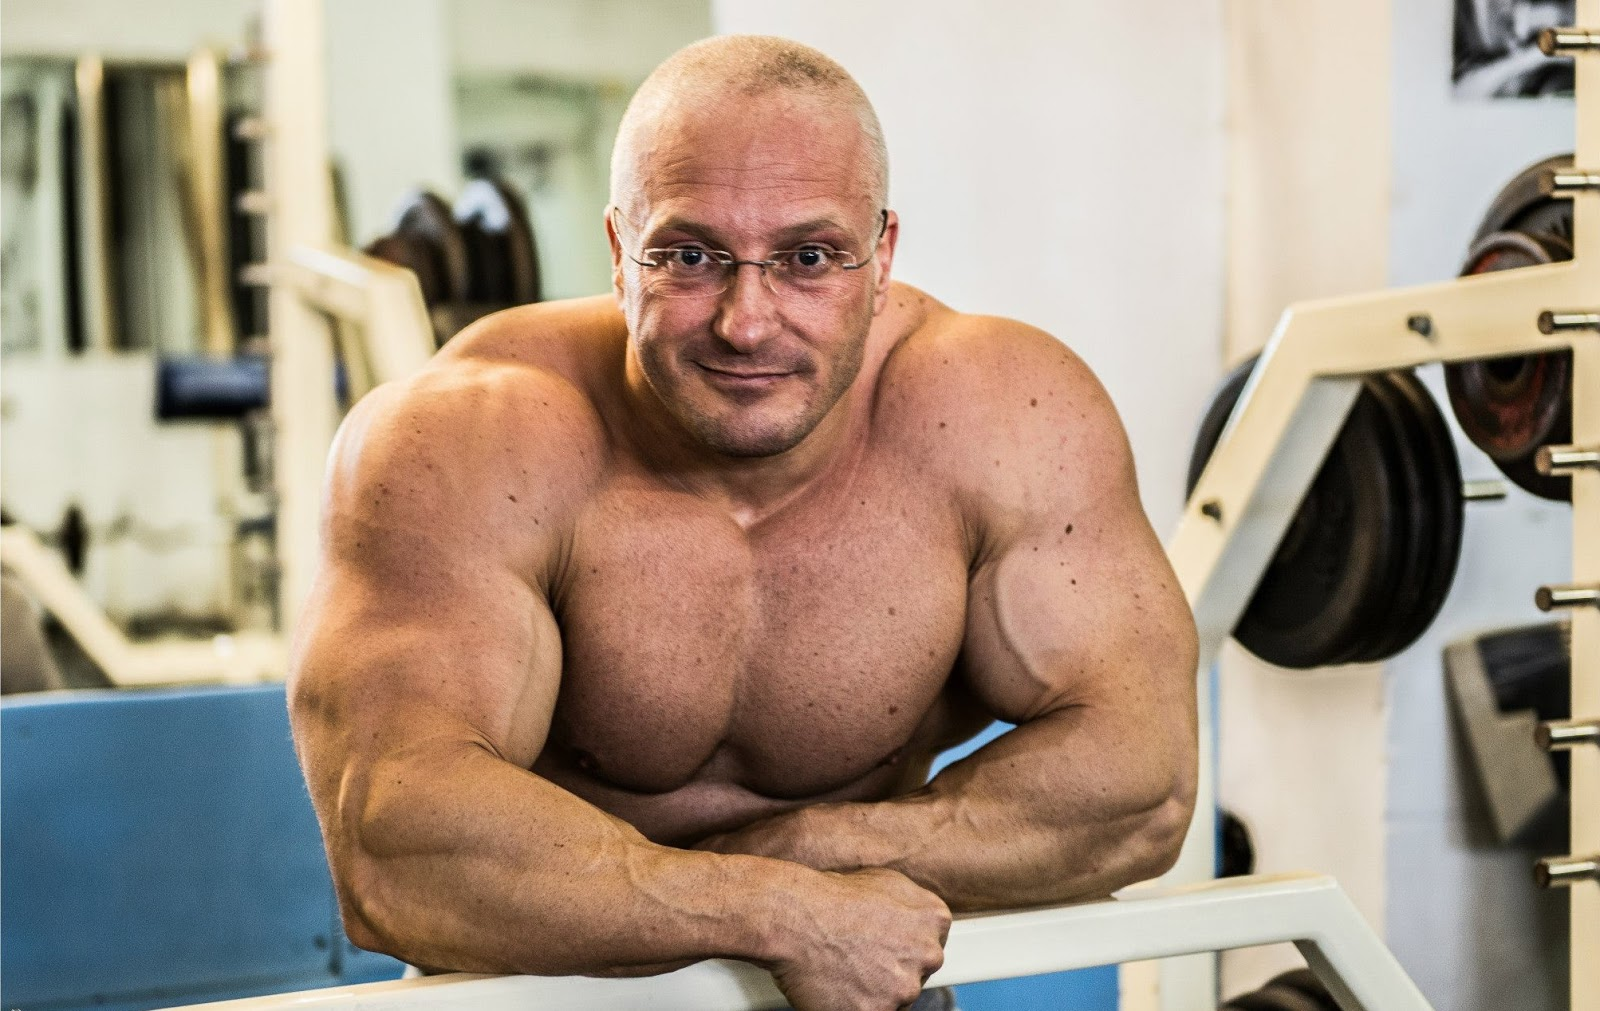 Muscle Lover: Big muscle daddy from Romania - Feri Andrasoni